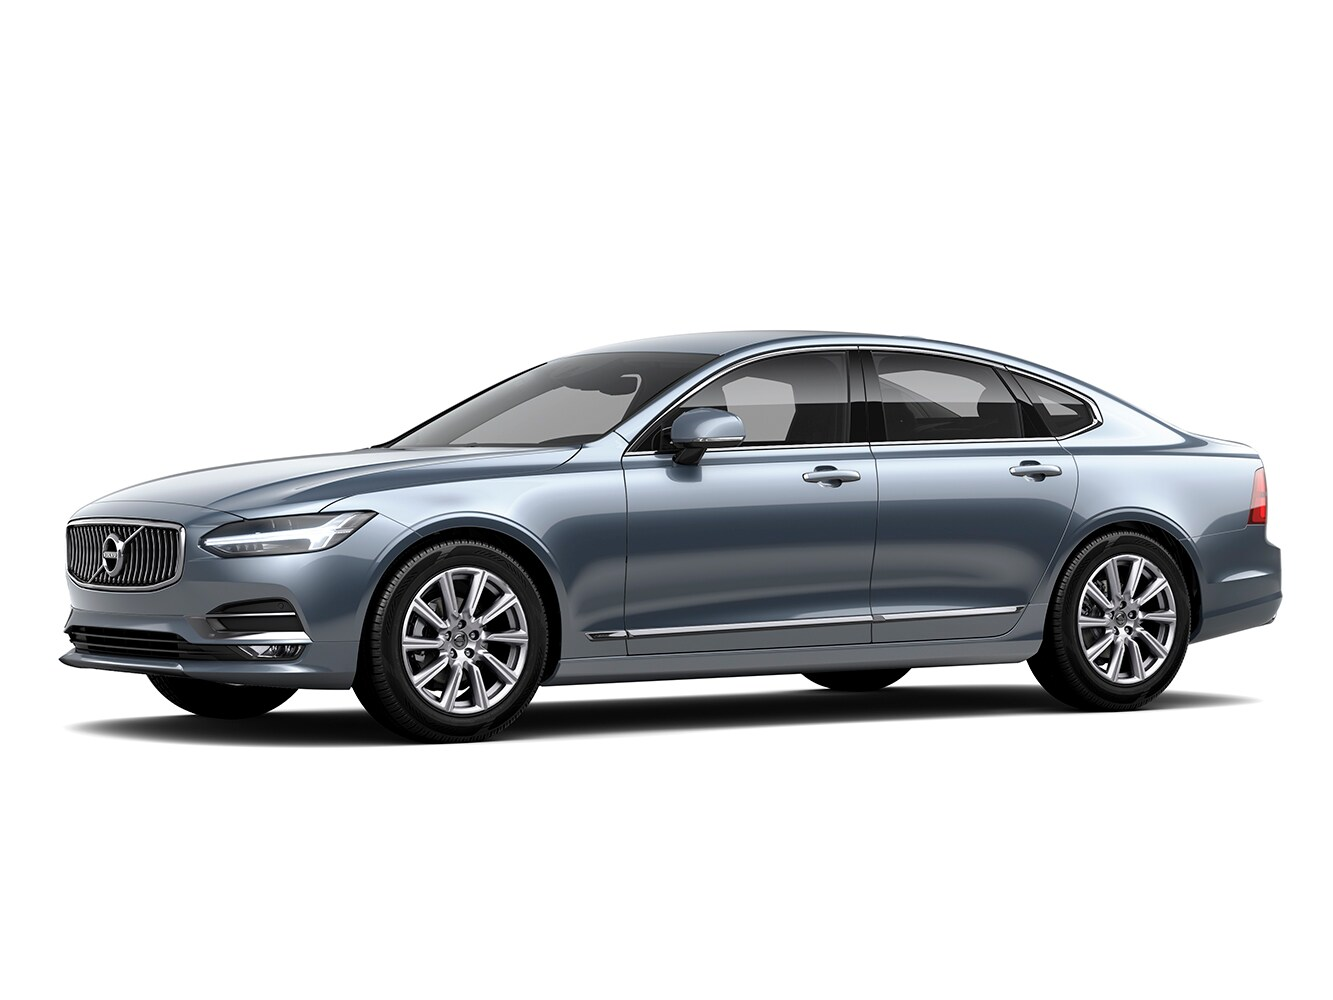 The Volvo S90 Inscription trim